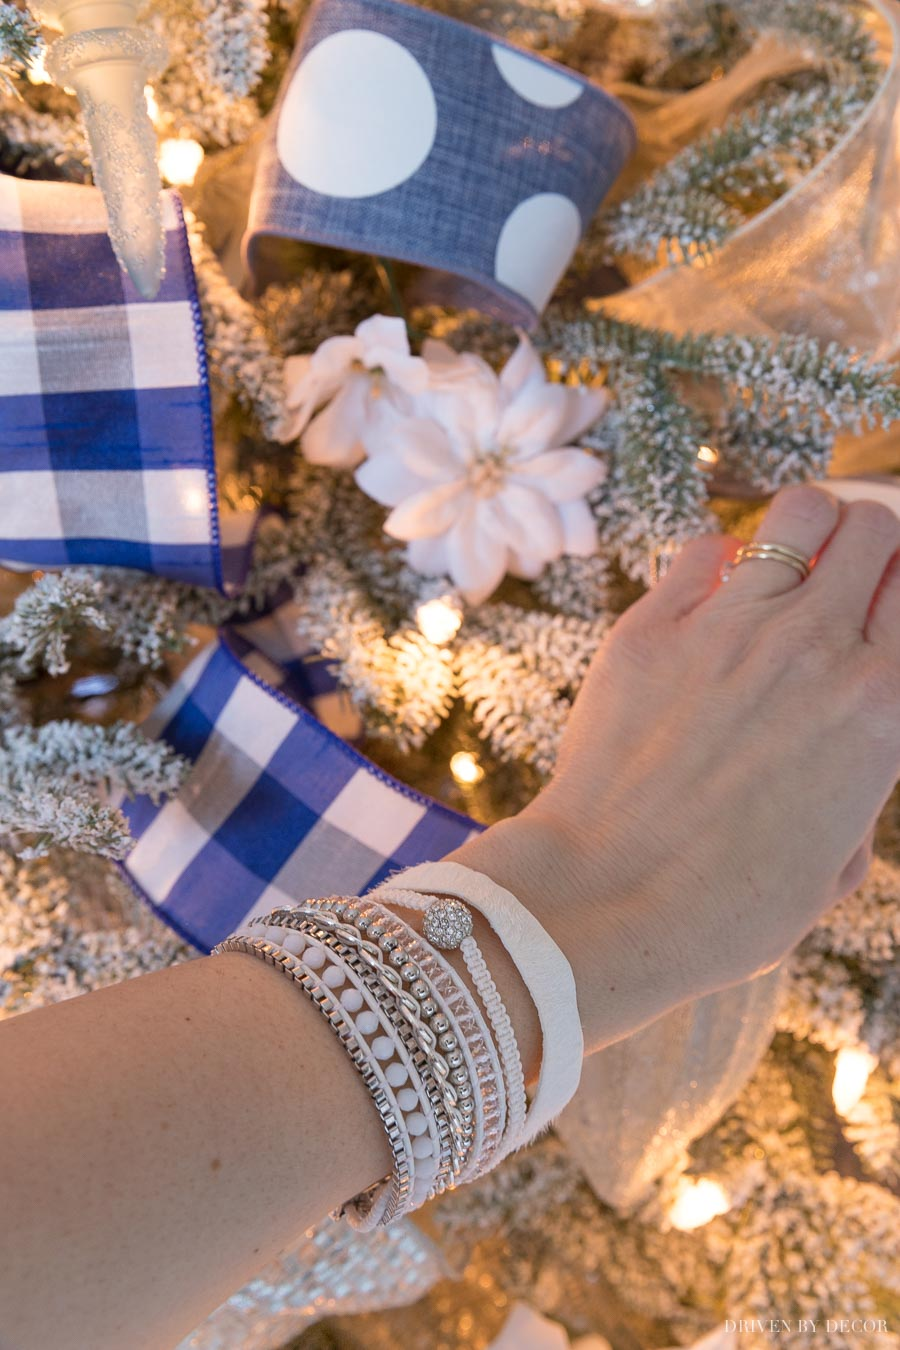 Love this gorgeous bracelet that gives the appearance of multiple stacked bracelets! Adding to my Christmas wish list!